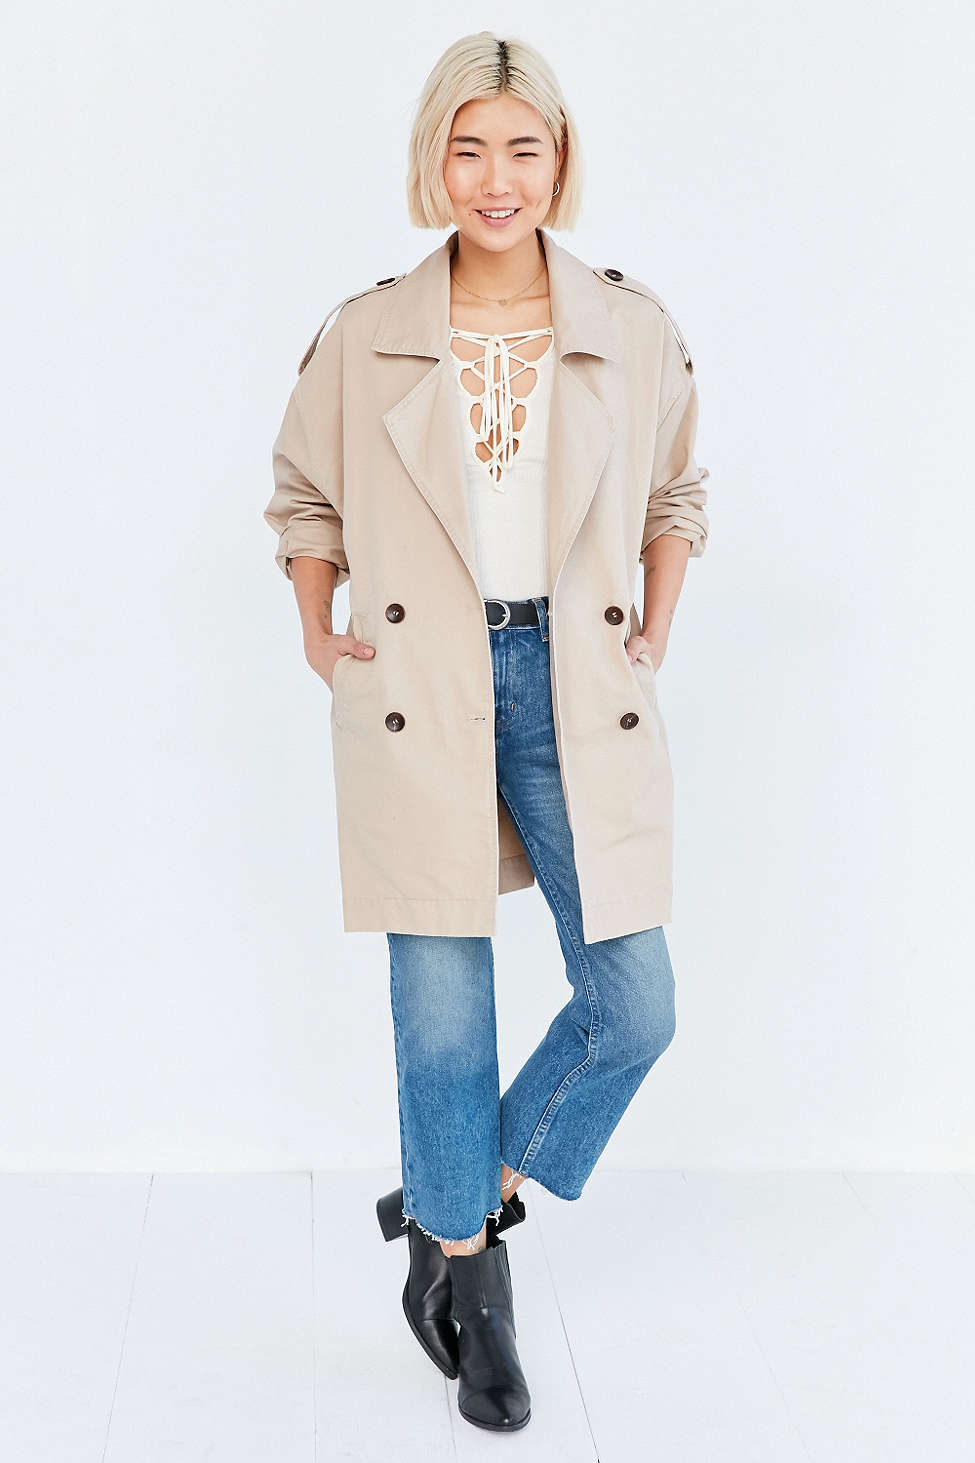 blue-med-crop-jeans-white-top-belt-black-shoe-booties-howtowear-fashion-style-outfit-fall-winter-tan-jacket-coat-trench-basic-urbanoutfitters-blonde-weekend.jpg